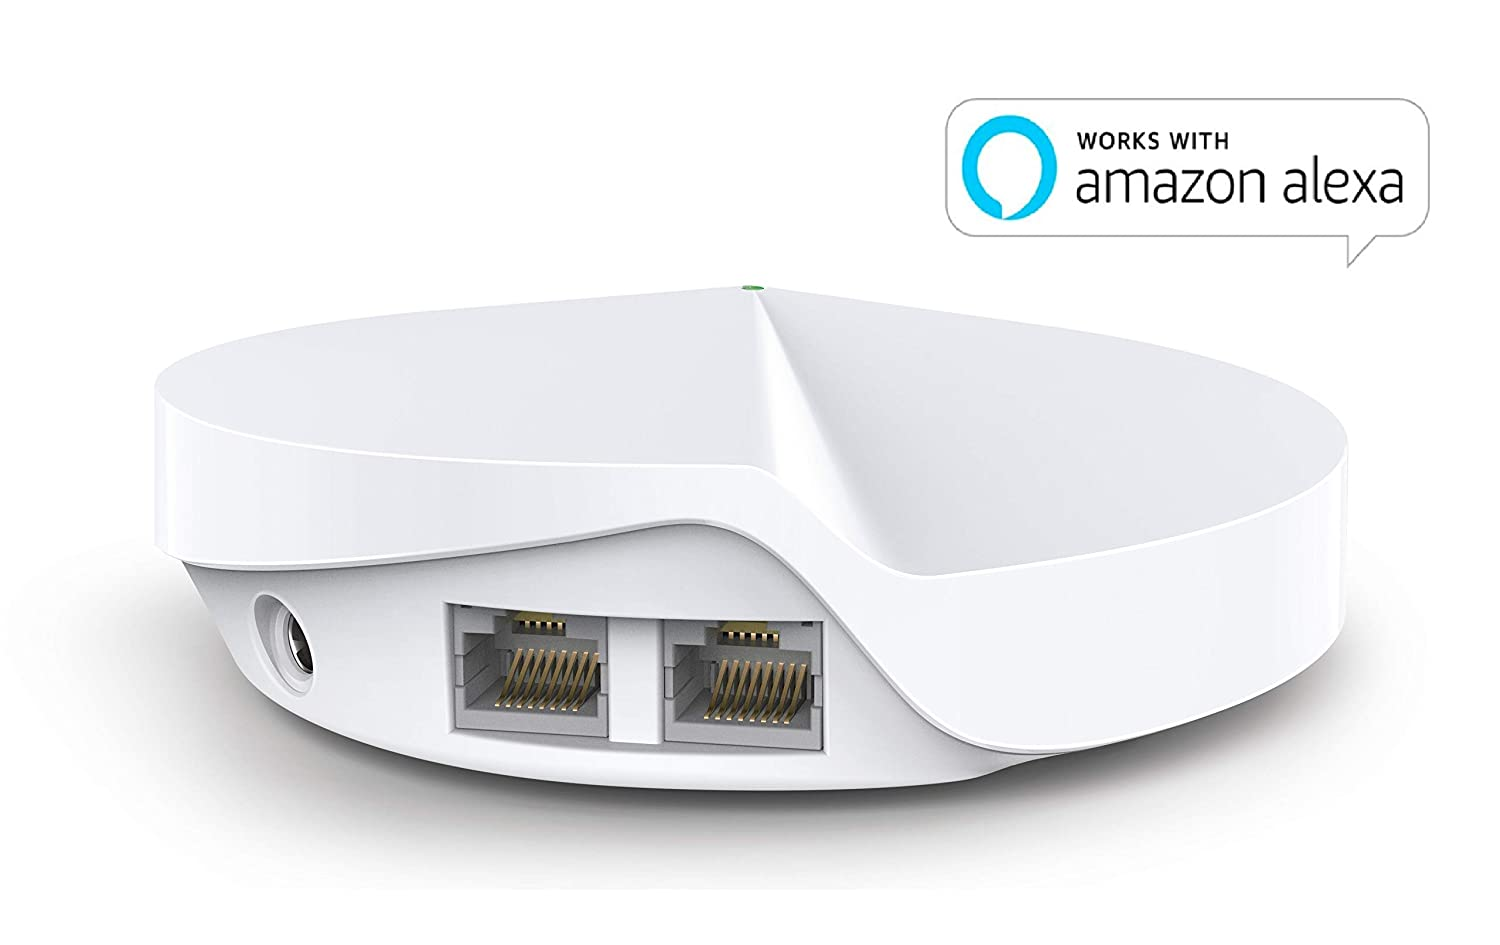 Tp Link Deco Whole Home Mesh Wifi System Homecare Support Seamless Roaming Dynamic Backhaul Adaptive Routing Up To 5 500 Sq Ft Coverage M5